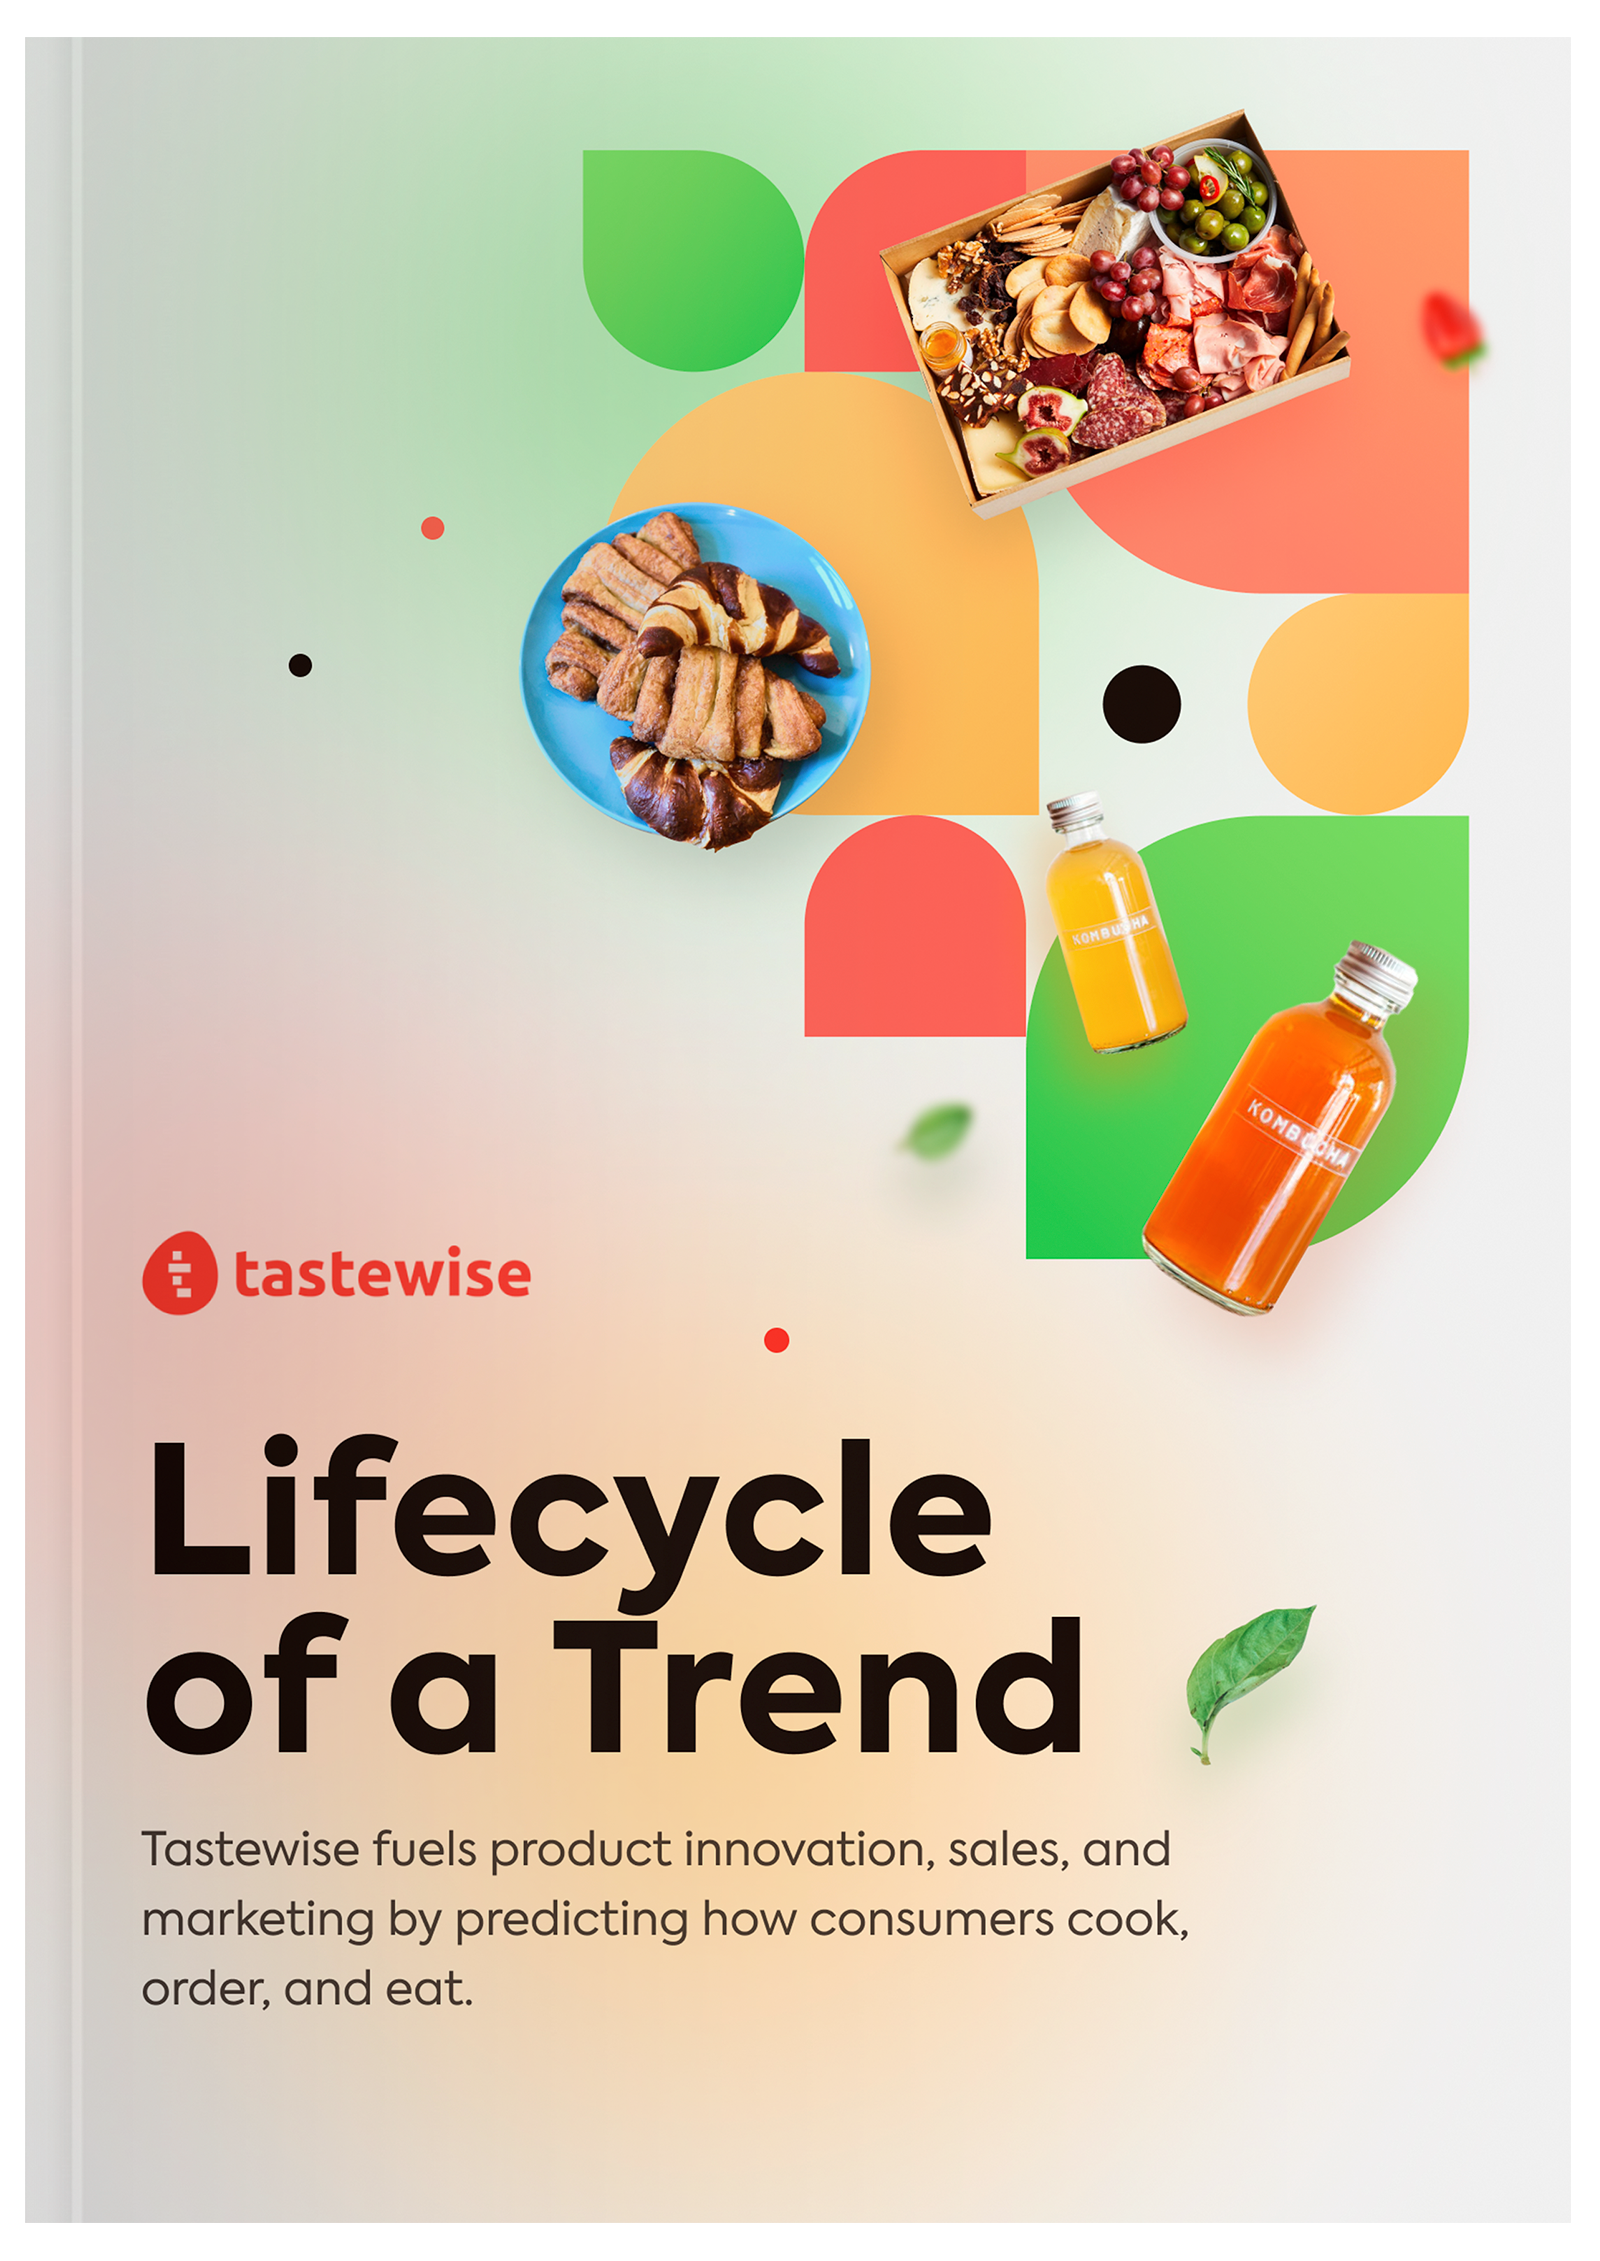 Understanding the Lifecycle of a Trend with AI